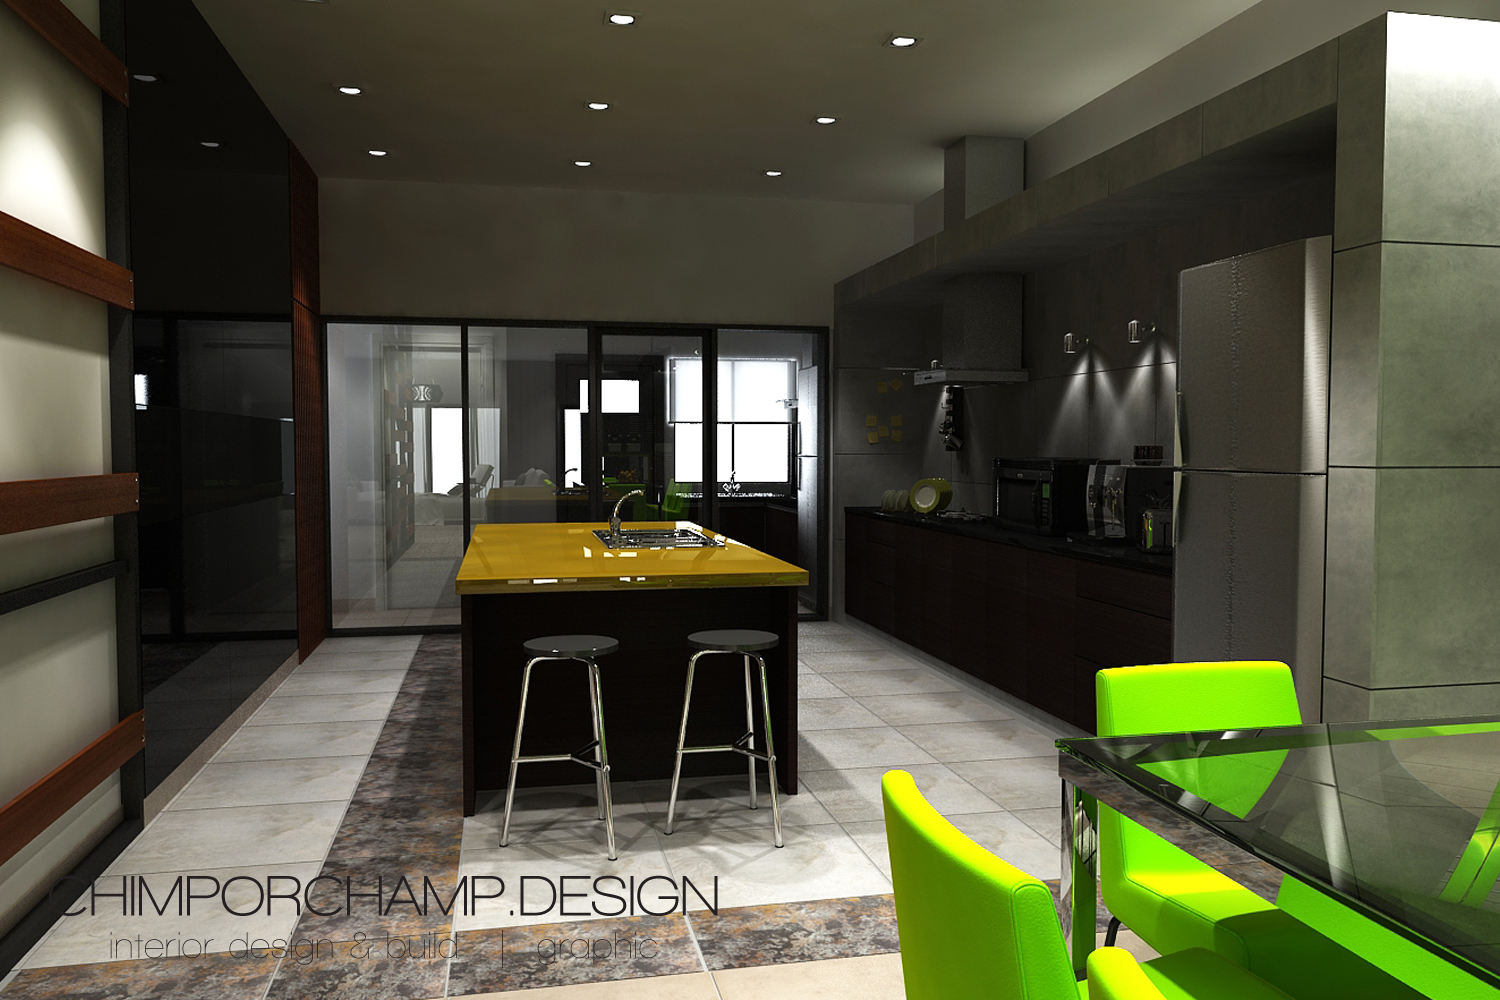 Renovation Loan, Renovation Rumah, Interior design Malaysia